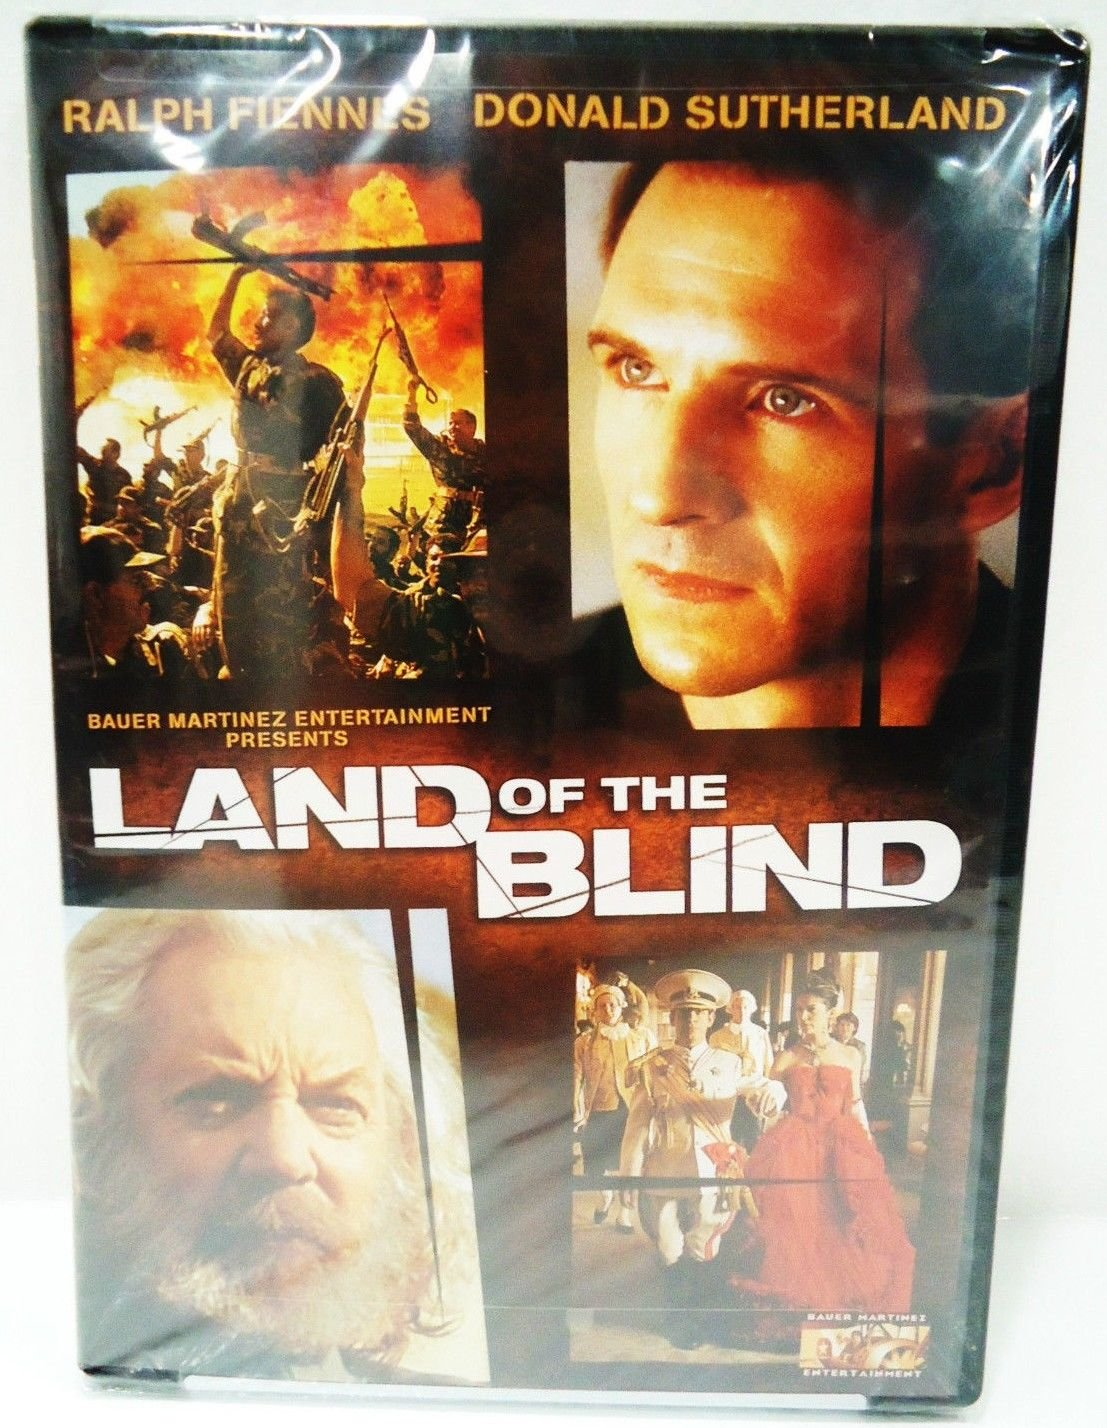 LAND OF THE BLIND - DVD - RALPH FIENNES - DONALD SUTHERLAND - NEW - WAR - MOVIE